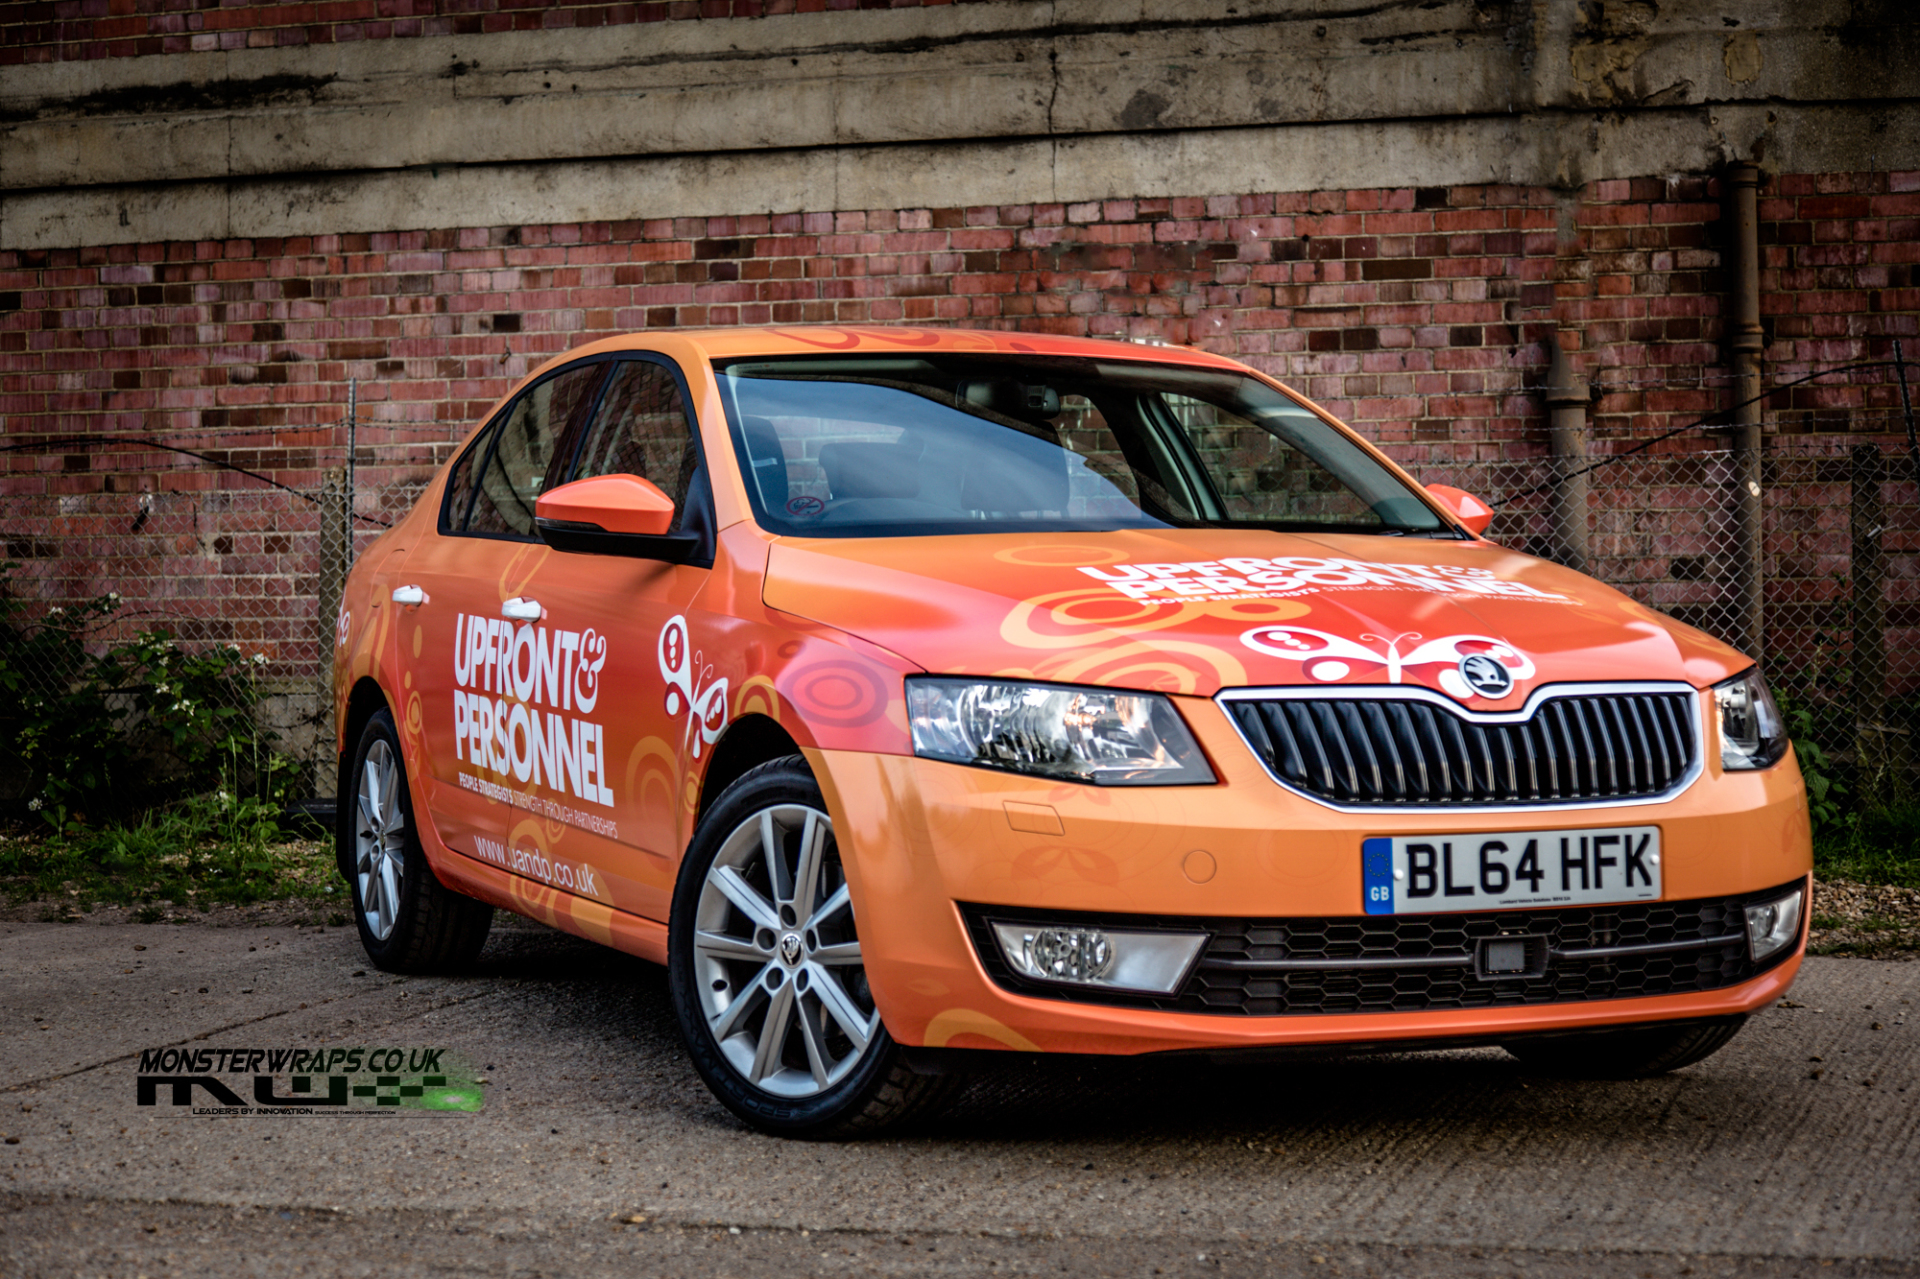 Skoda Octavia upfront & Personnel commercial wrap